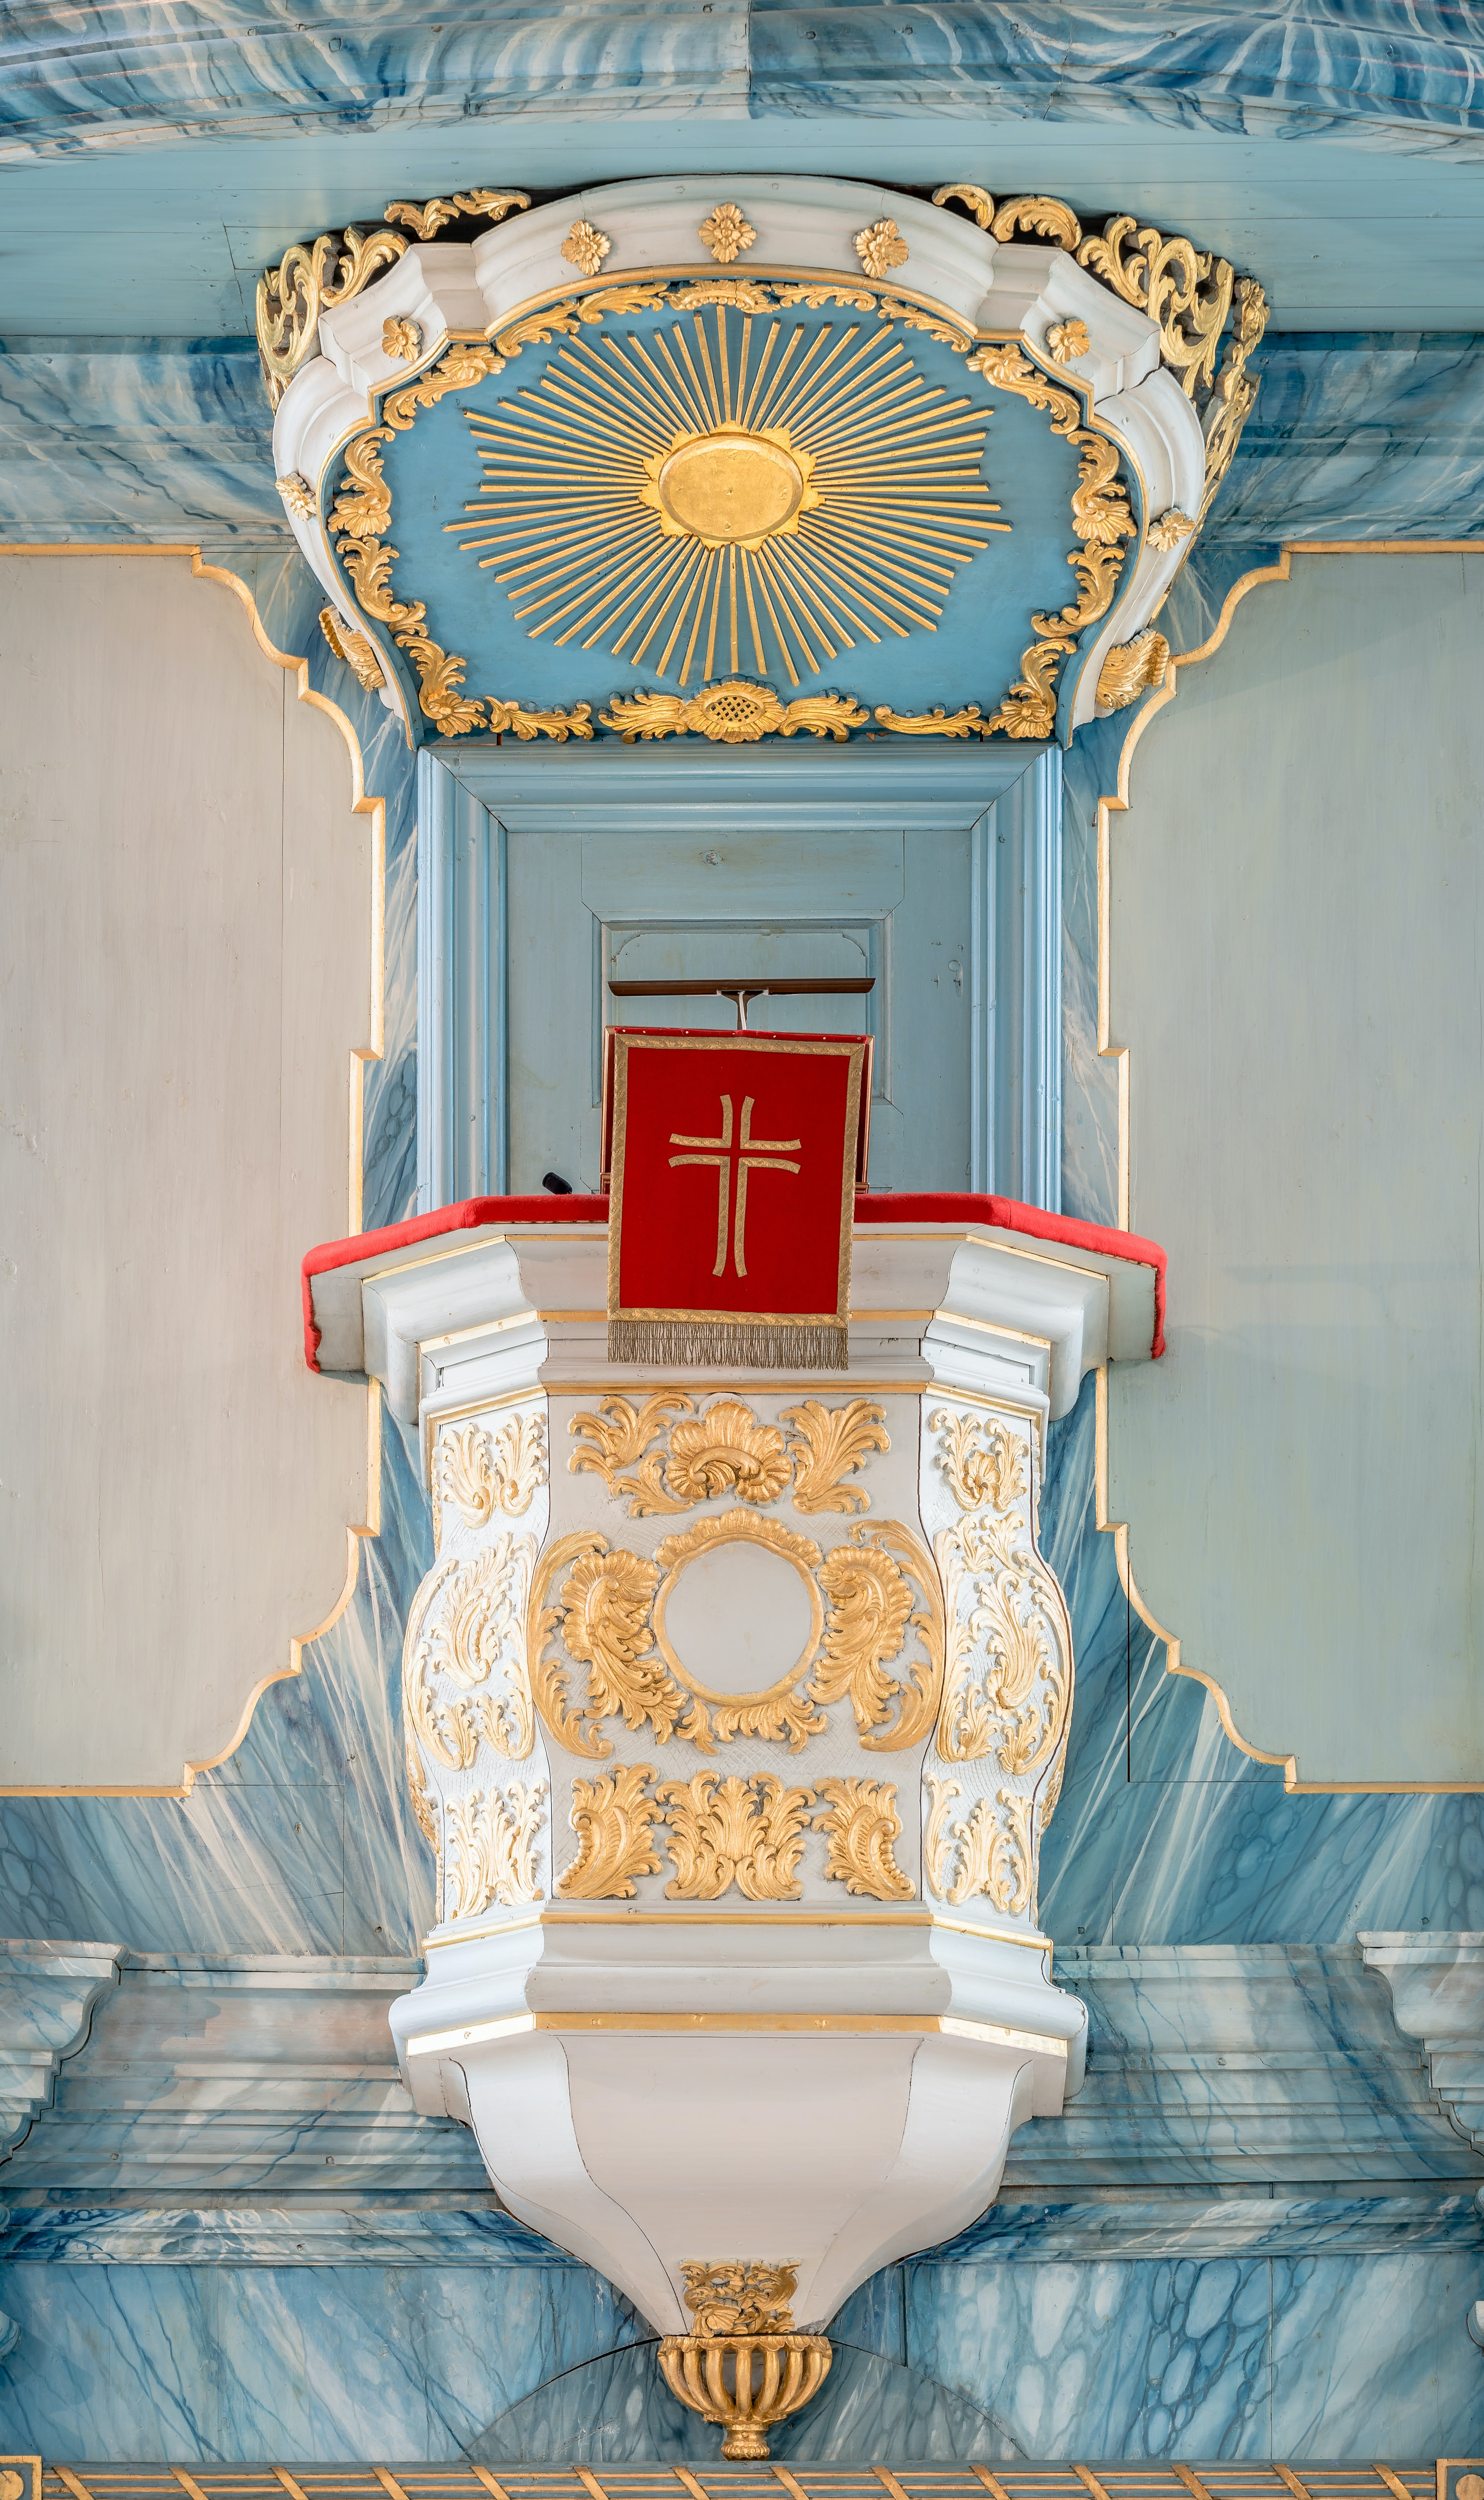 white and red altar with cross signage